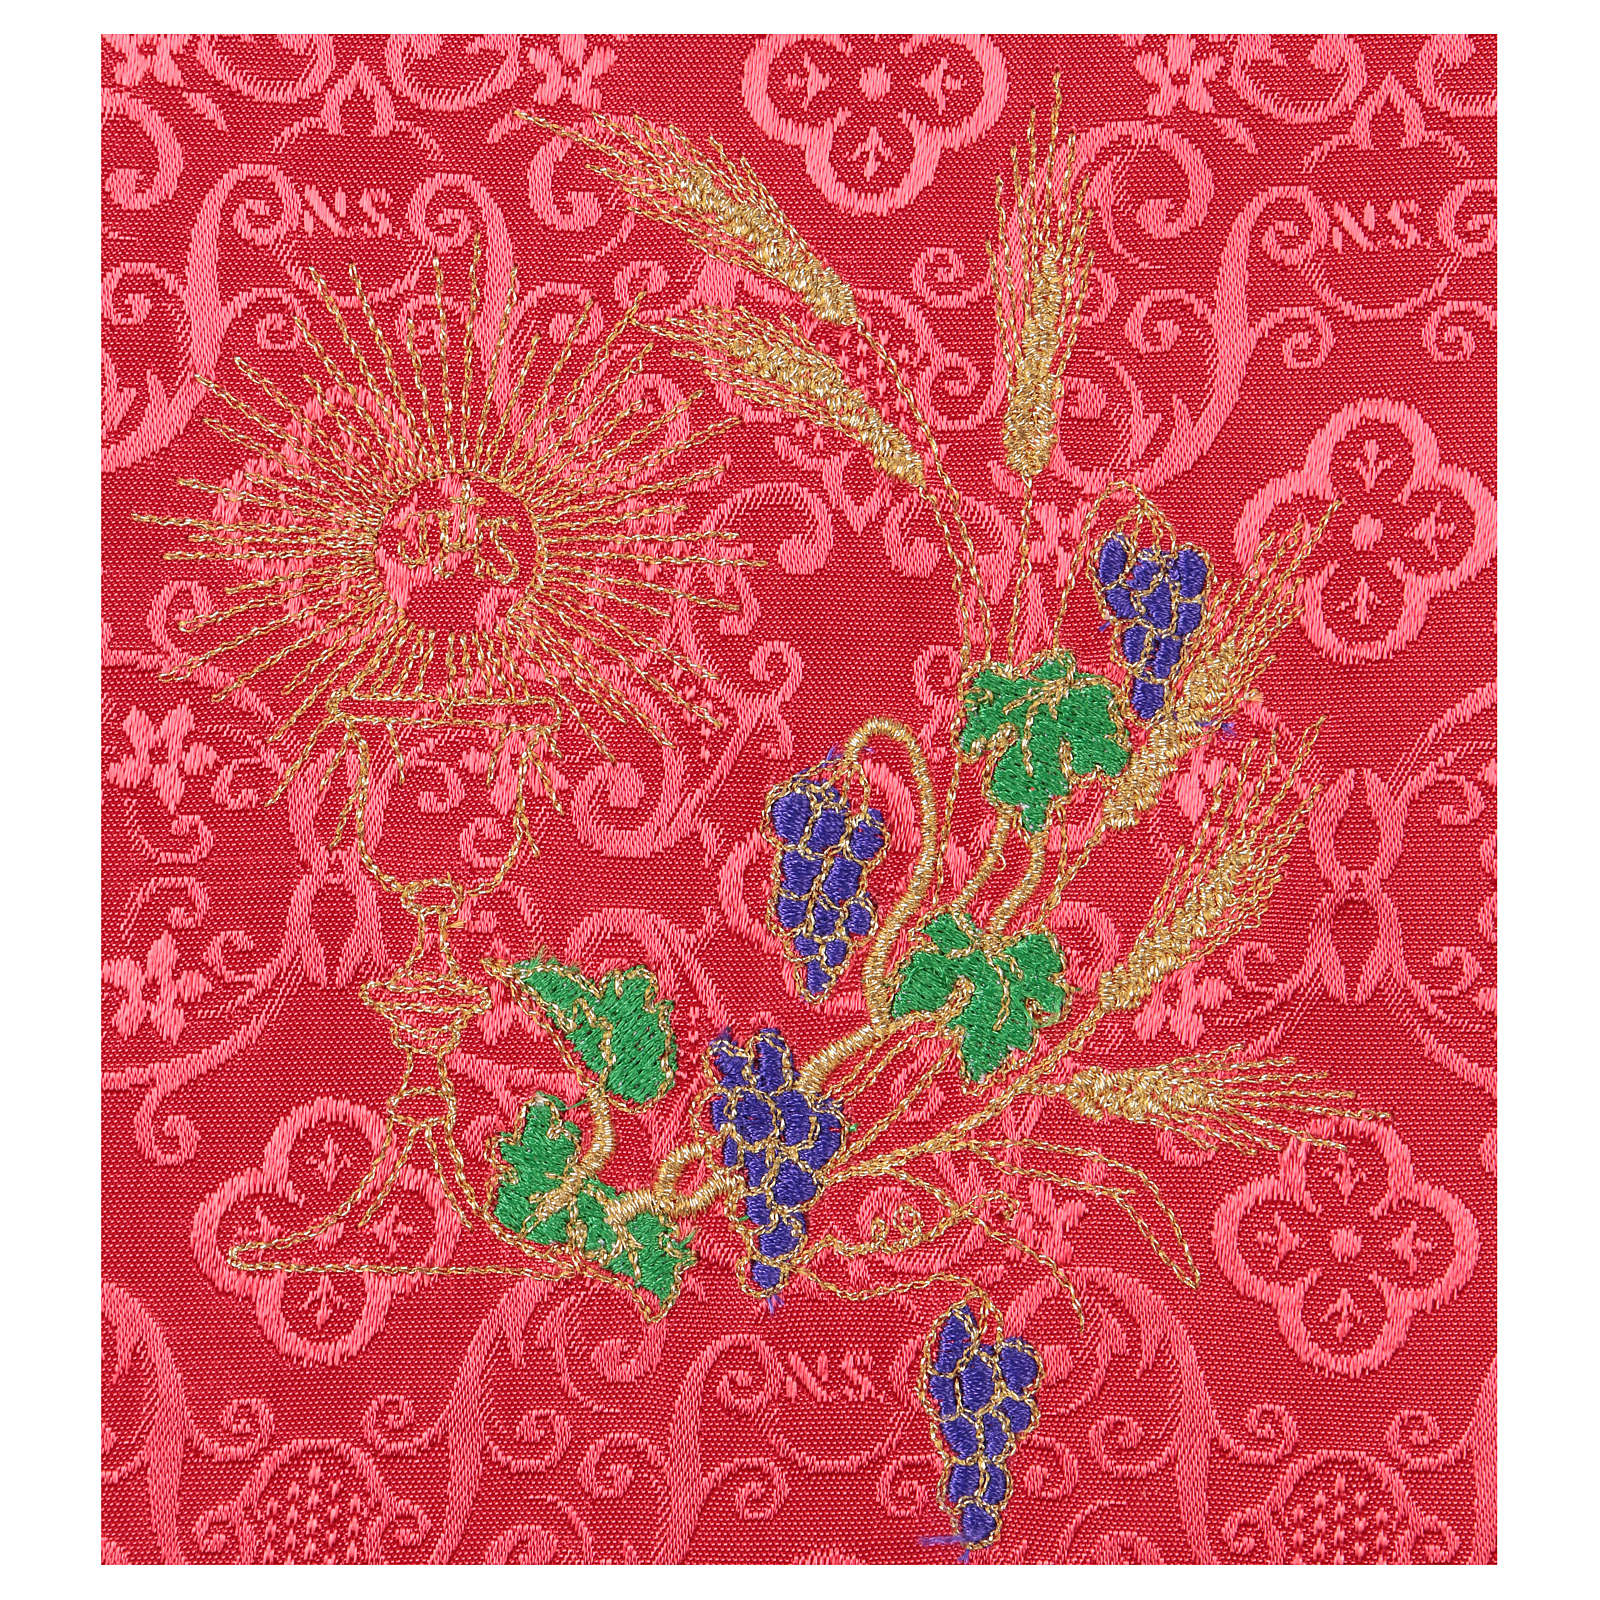 Red damask fabric chalice pall with chalice and grapes embroidery 4